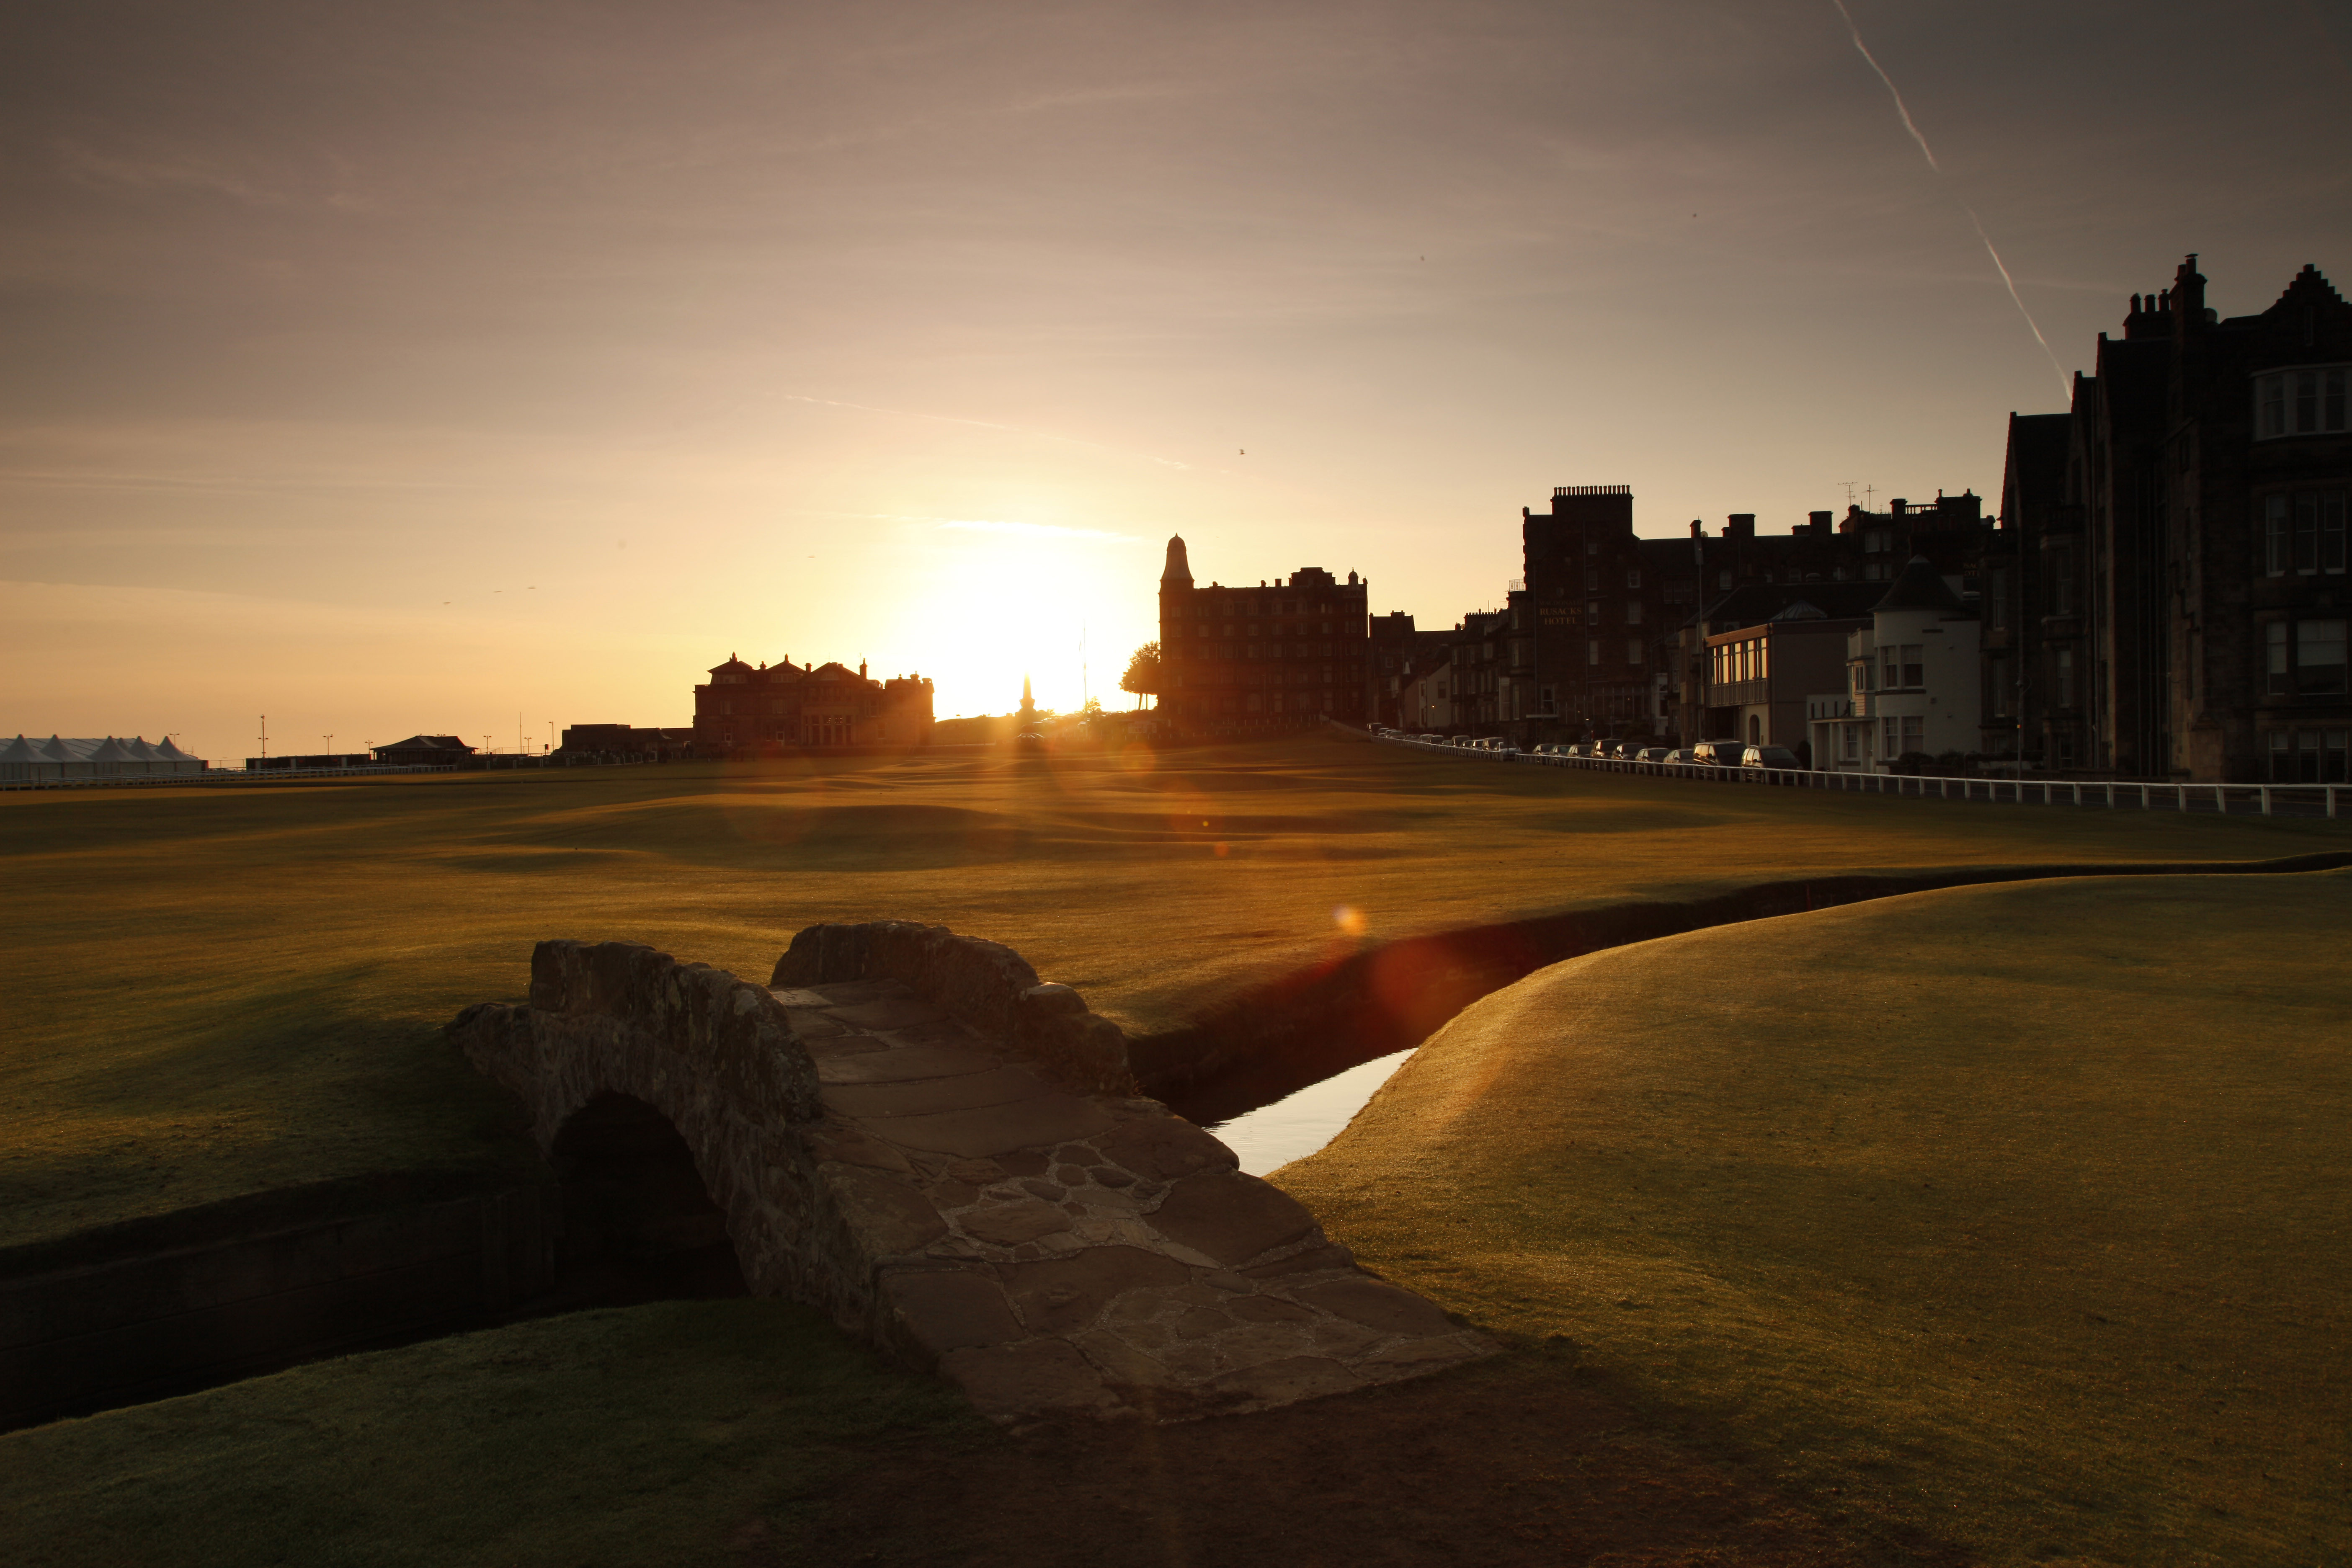 A special day in St Andrews - for Golfers often the best day of their trip